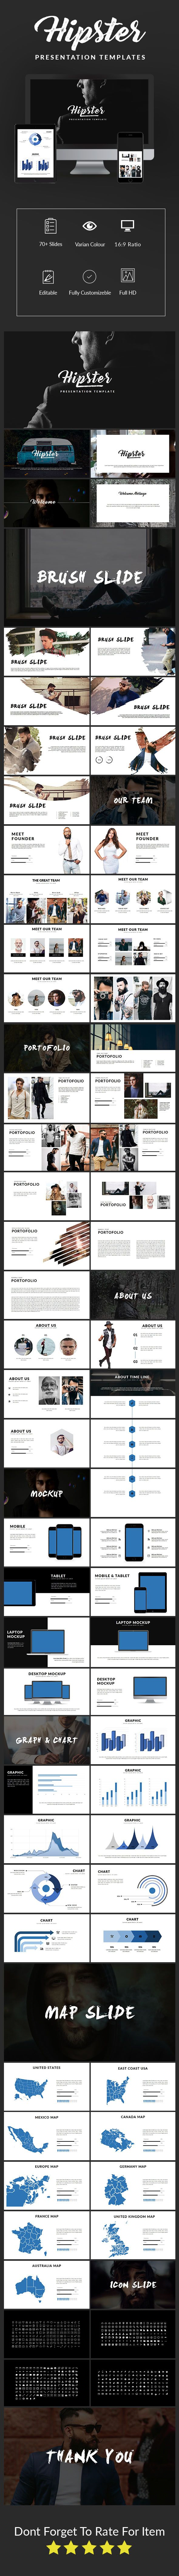 22 best powerpoint options images on Pinterest | Presentation layout ...